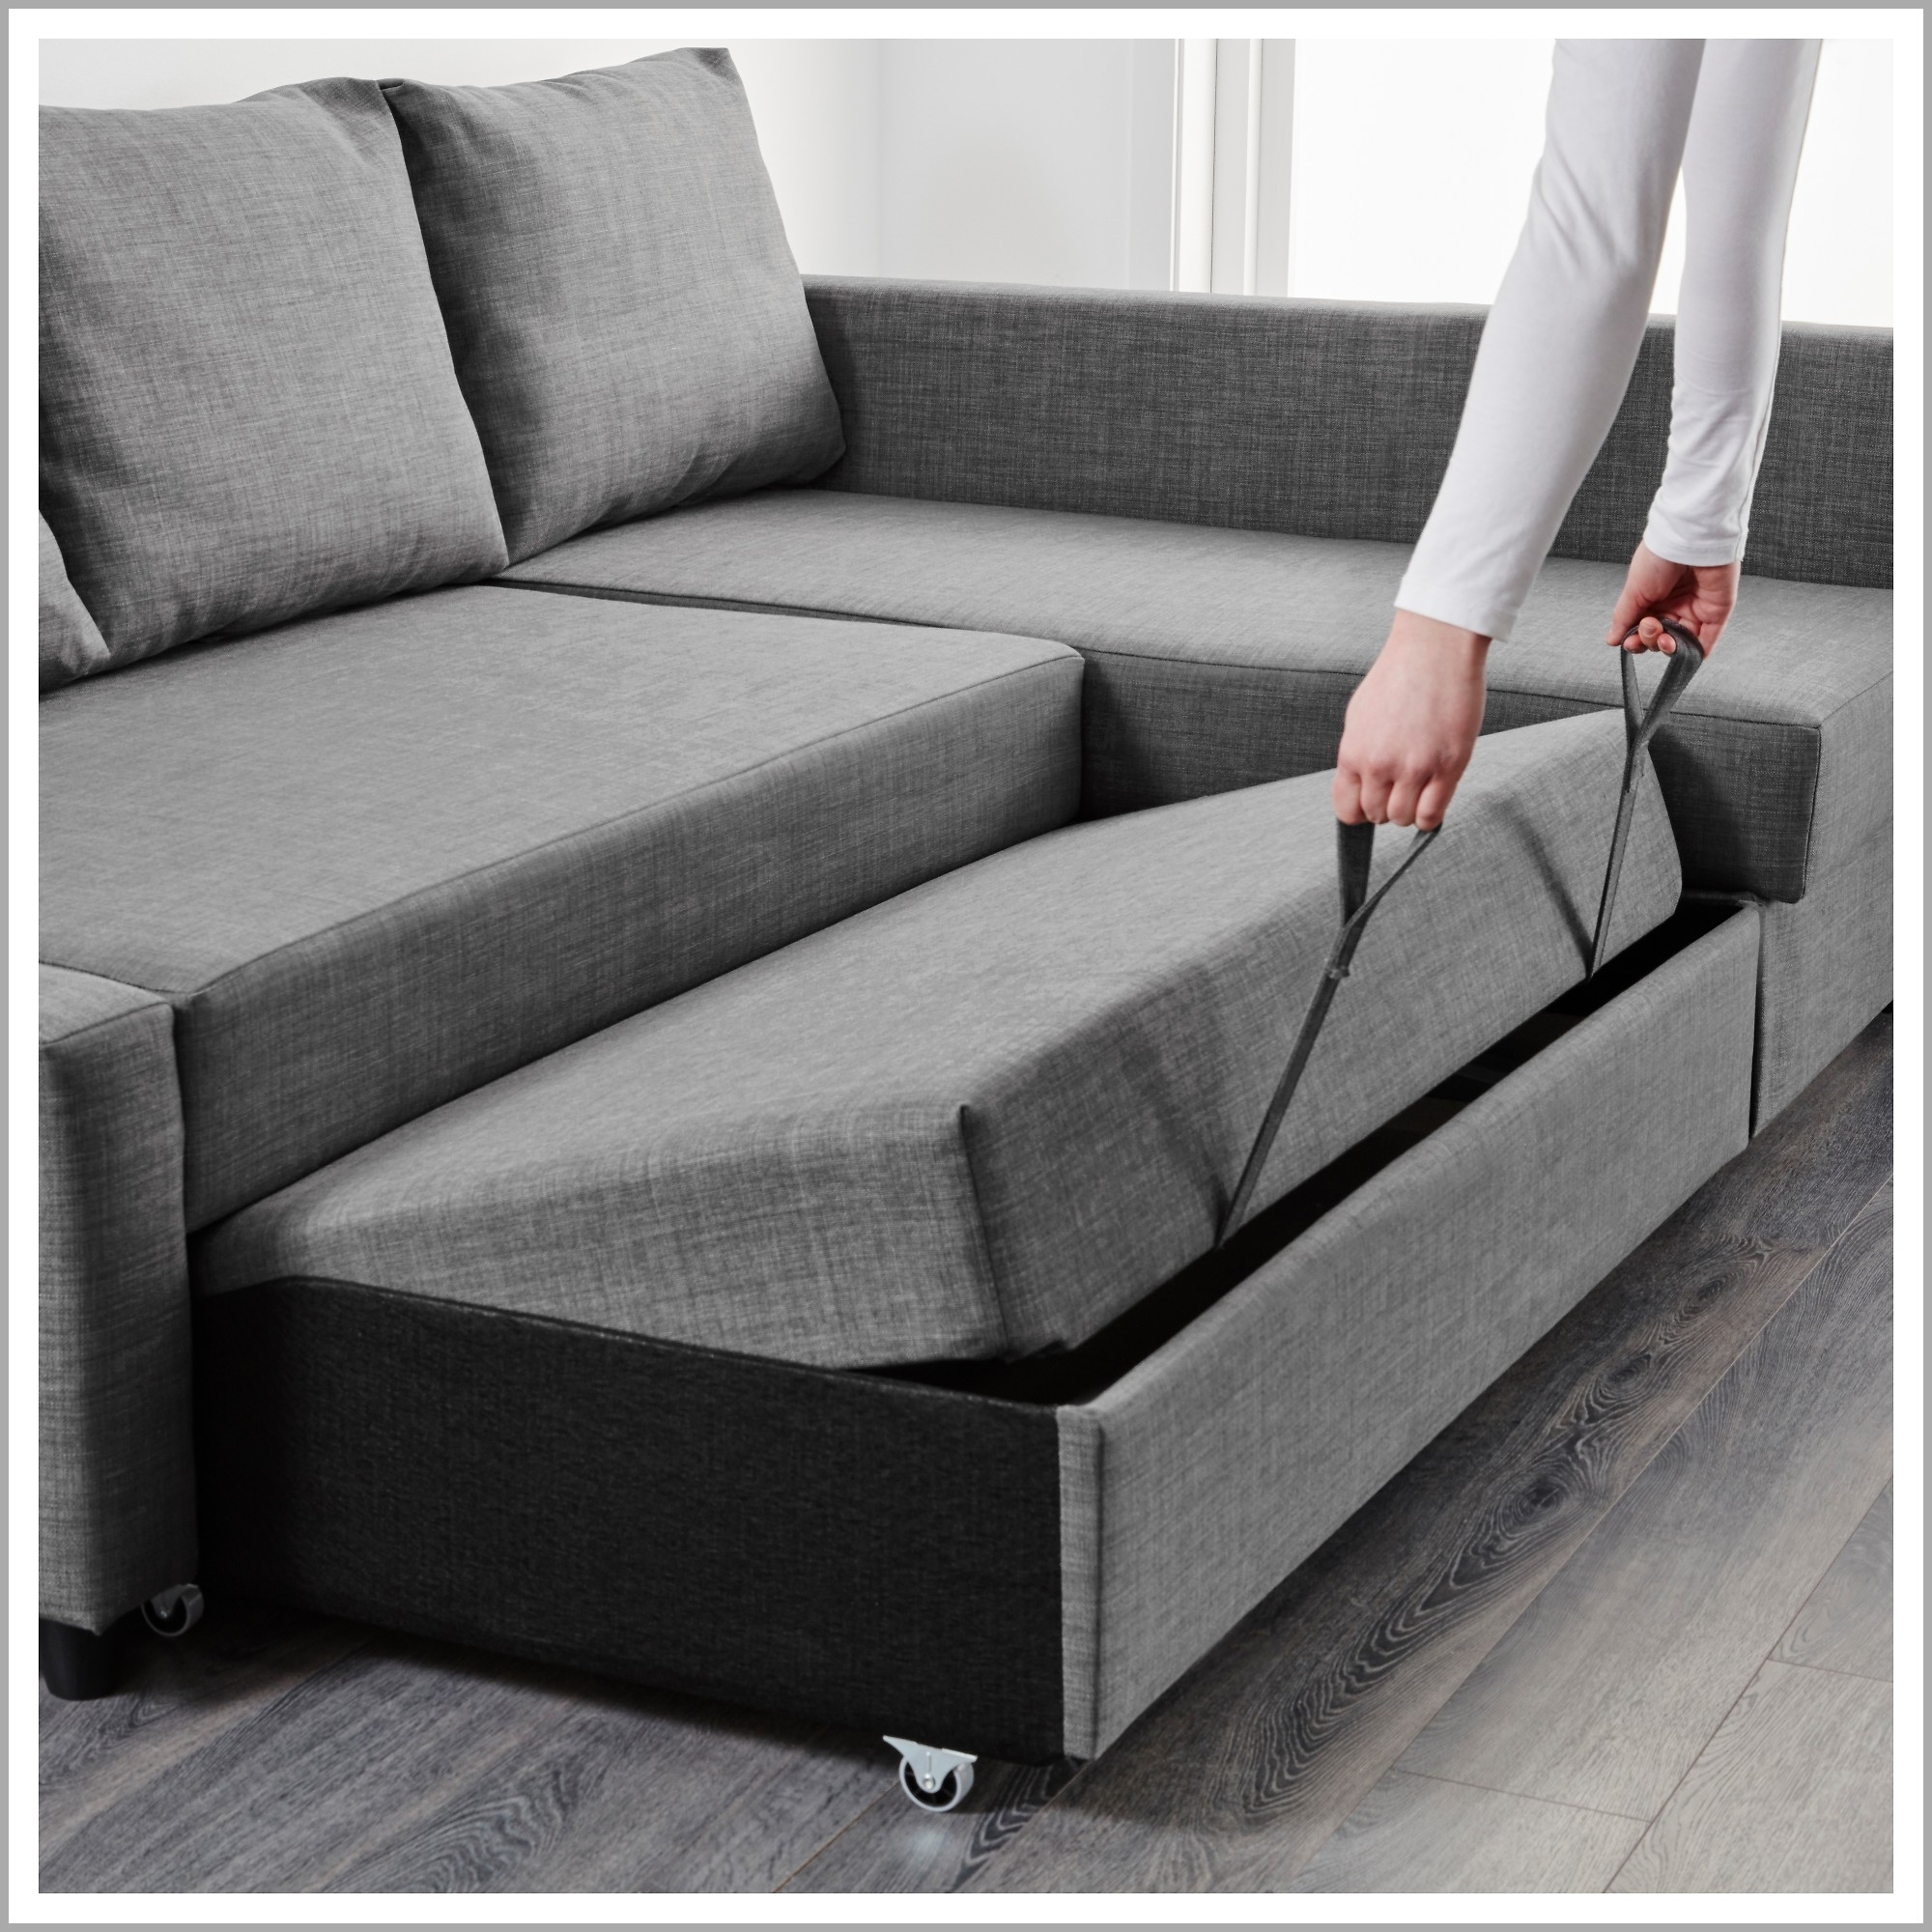 2019 Sofa Grey Bed 211029 Friheten Corner With Storage Pertaining To Ikea